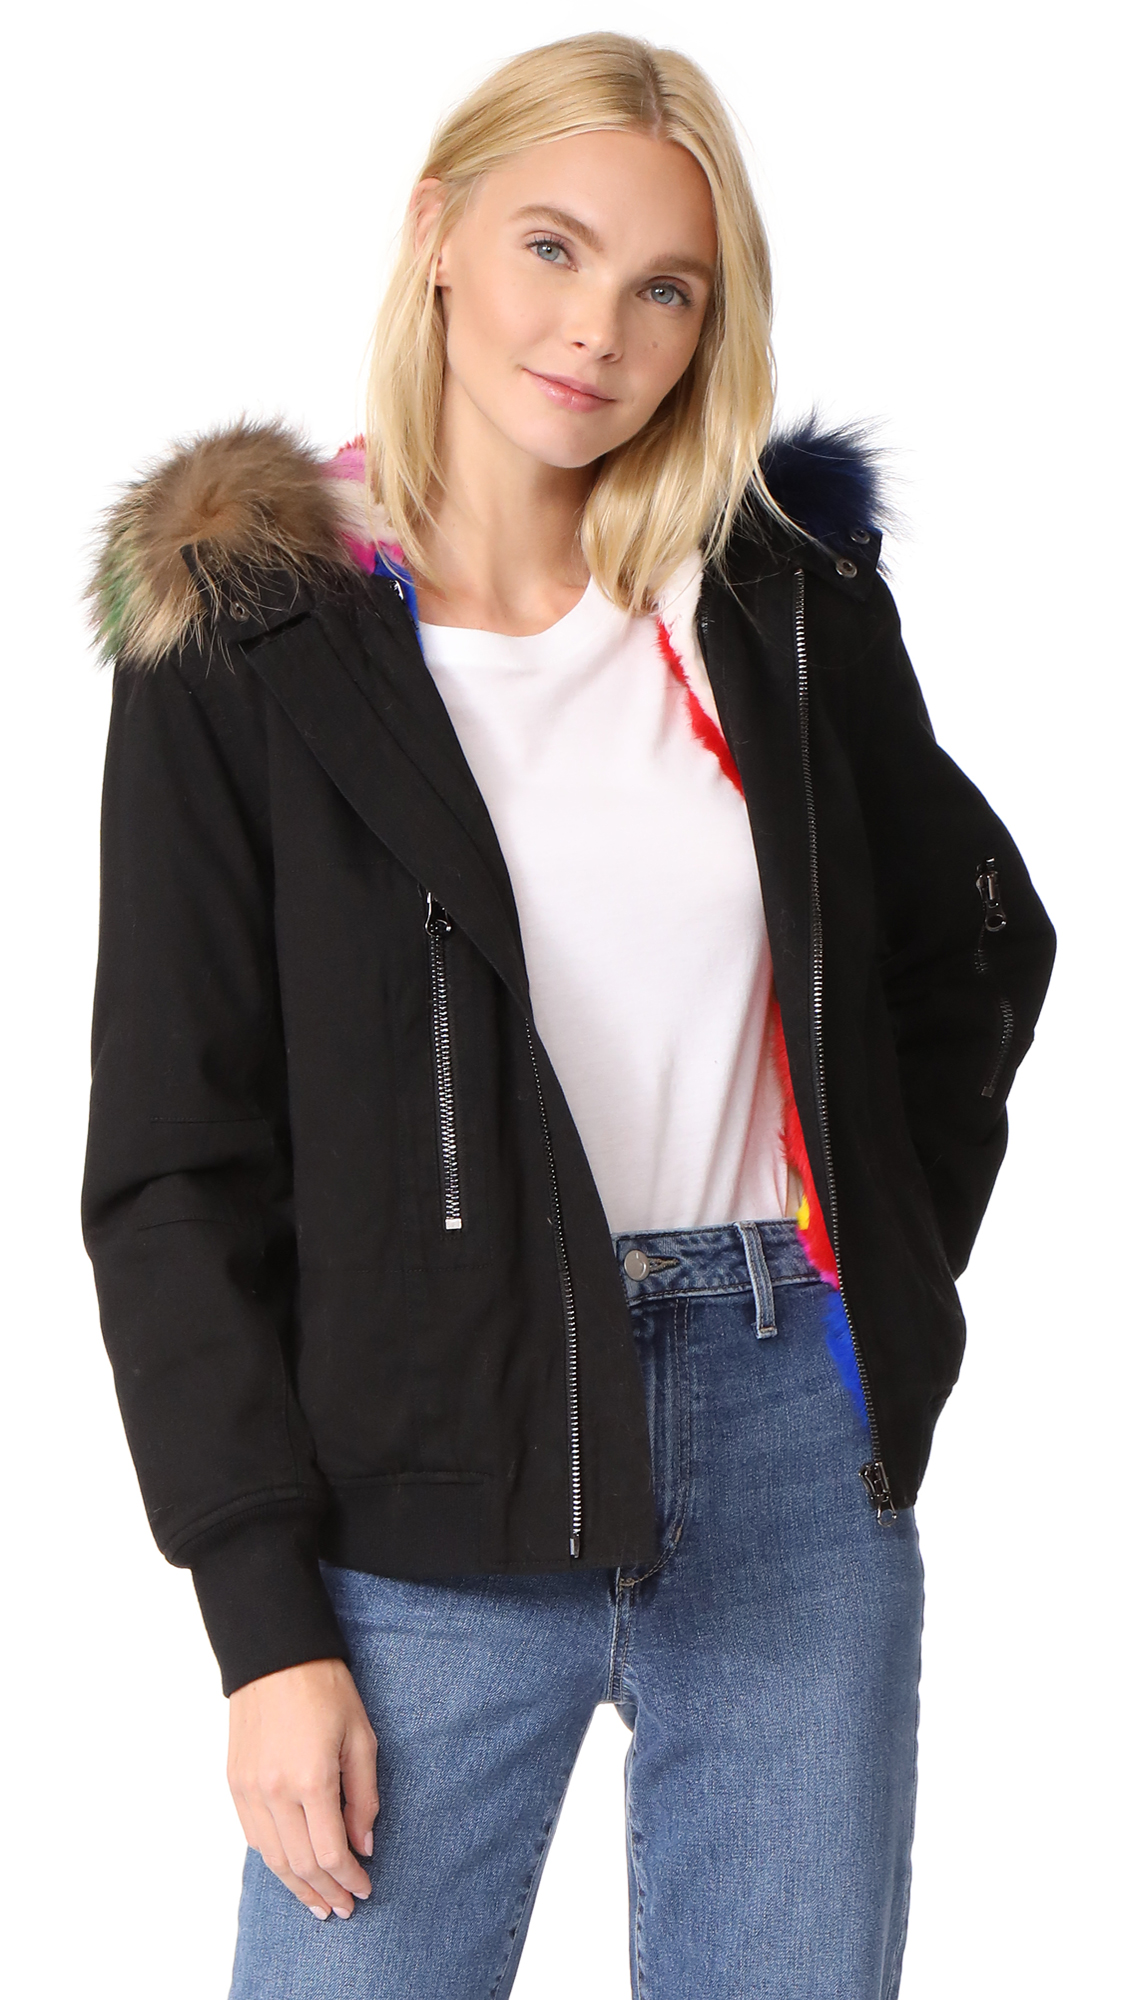 Adrienne Landau Hooded Bomber Jacket with Fur Lining - Black/Multi